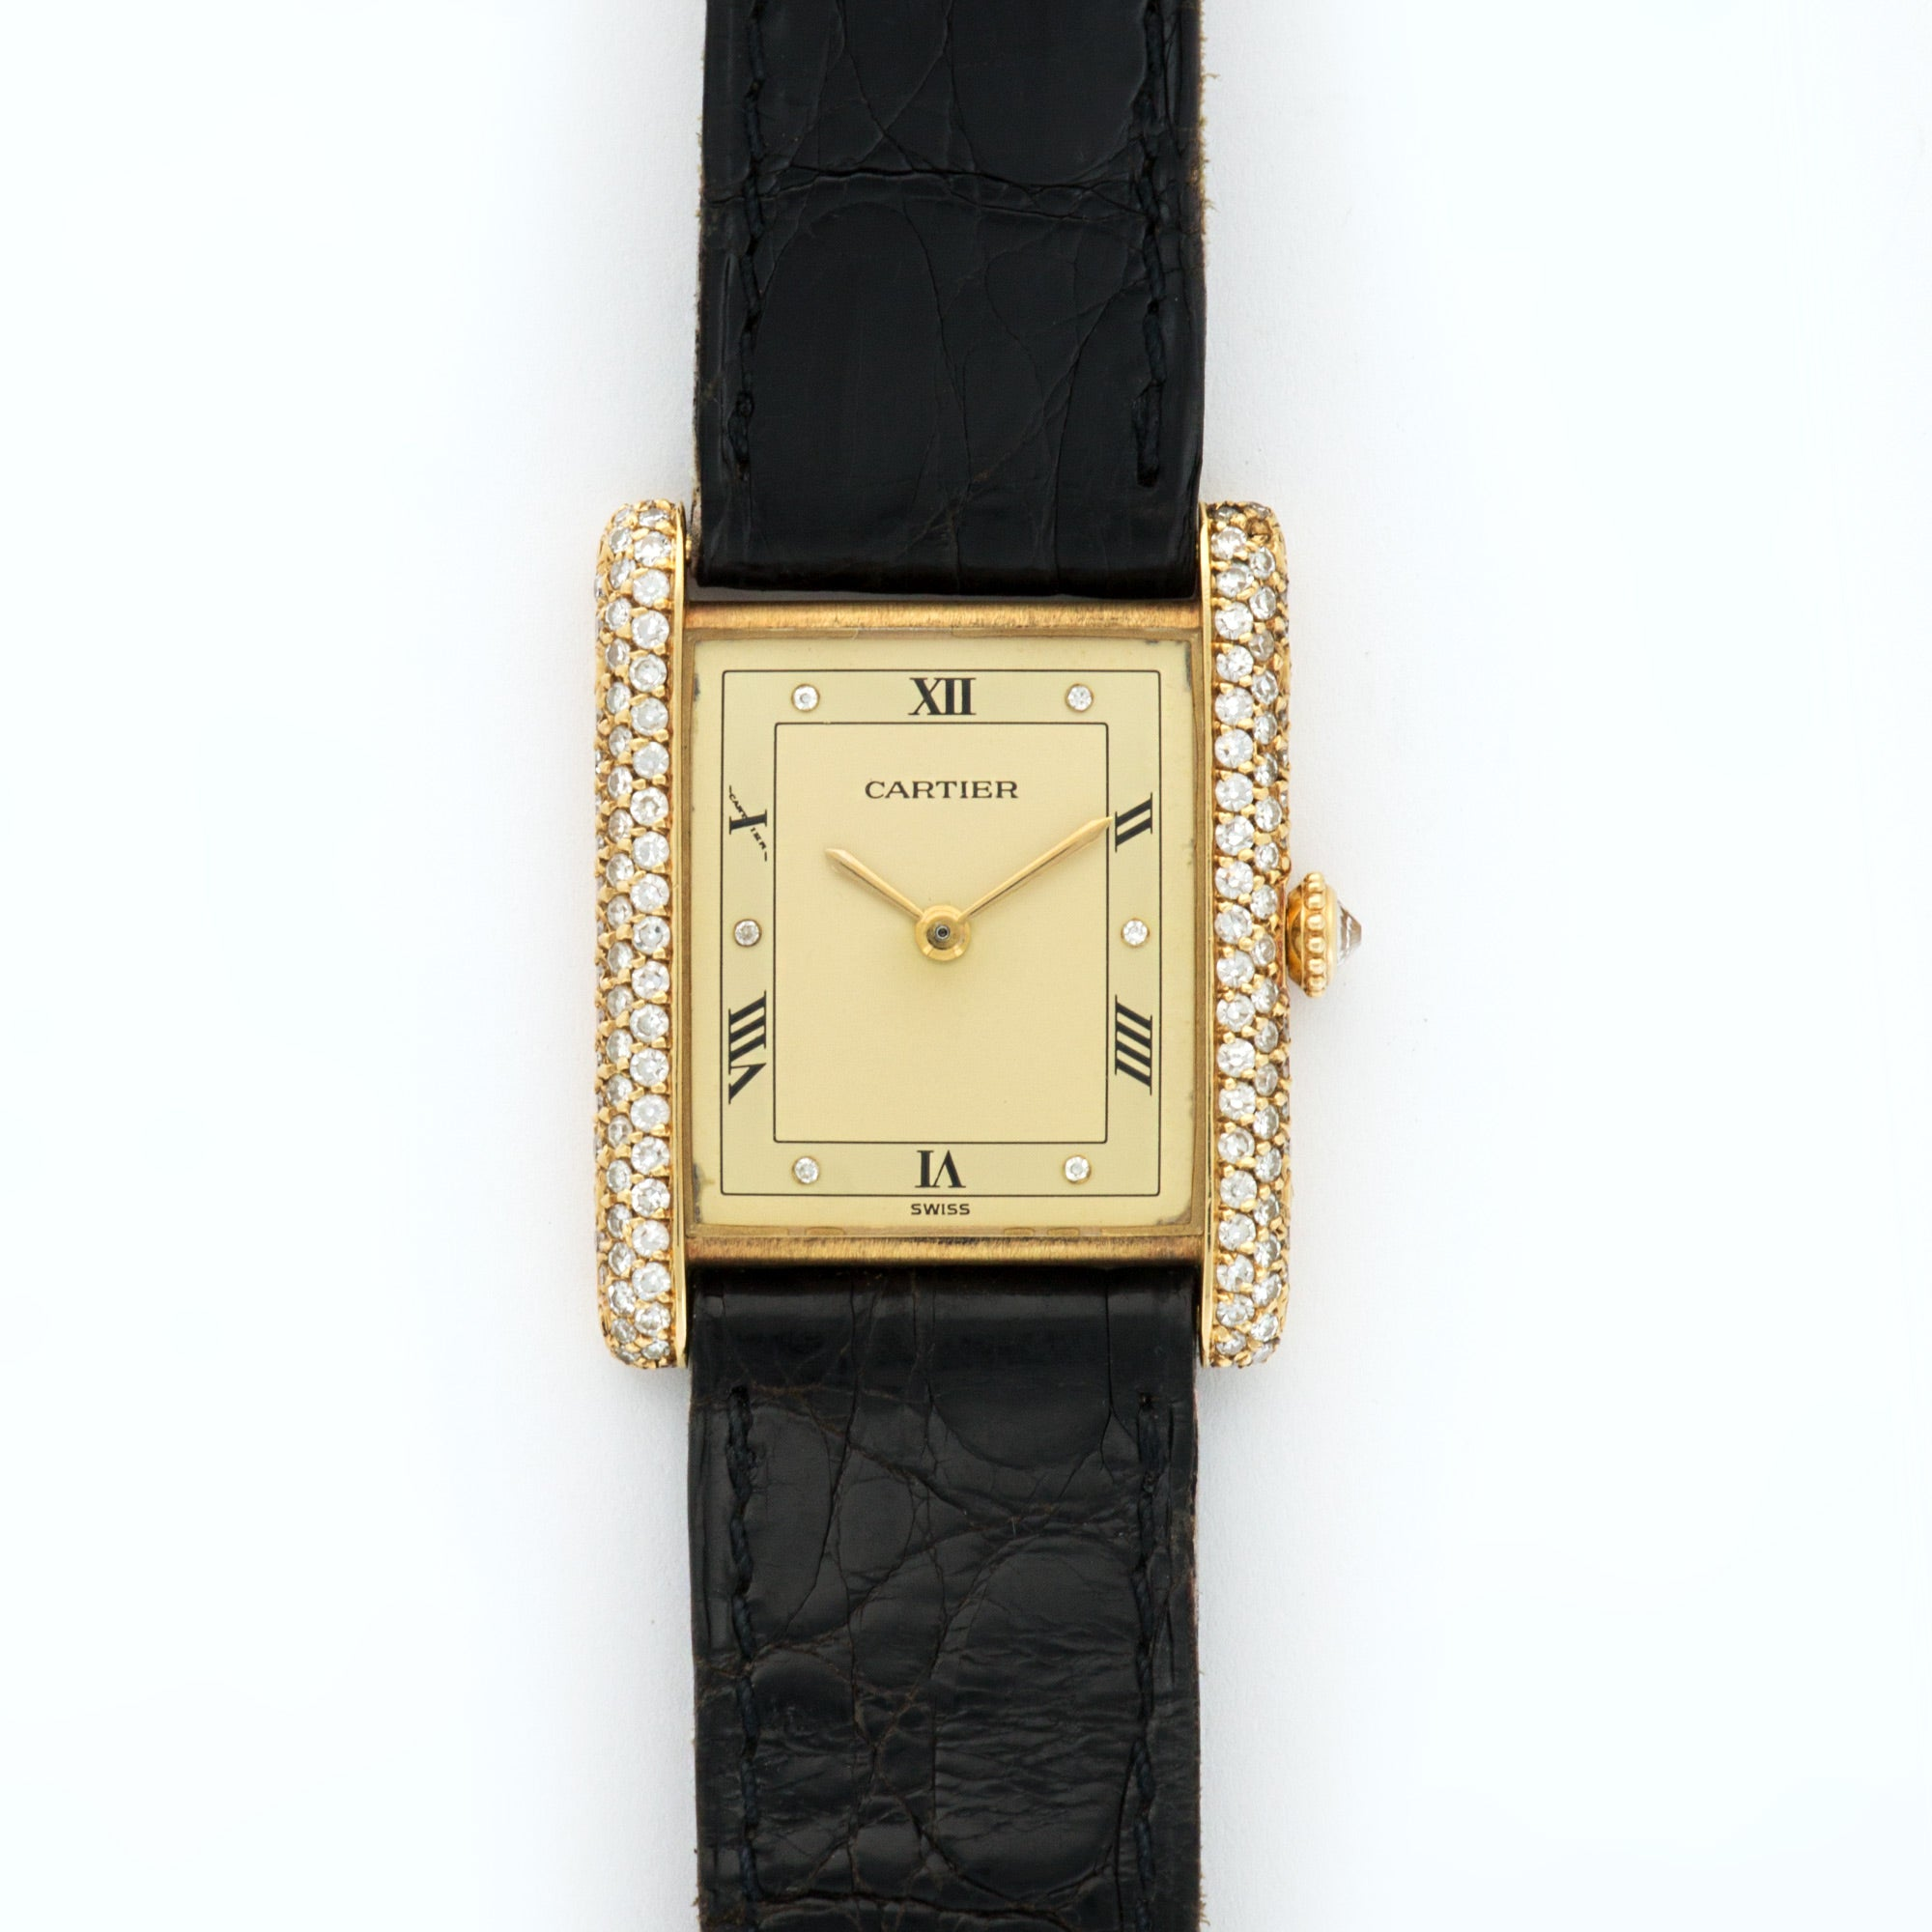 Cartier Tank N/a 18k YG  Very Good Ladies 18k YG Champagne with Diamonds 24.6 X 30.5mm Manual 1980s Black Crocodile N/A